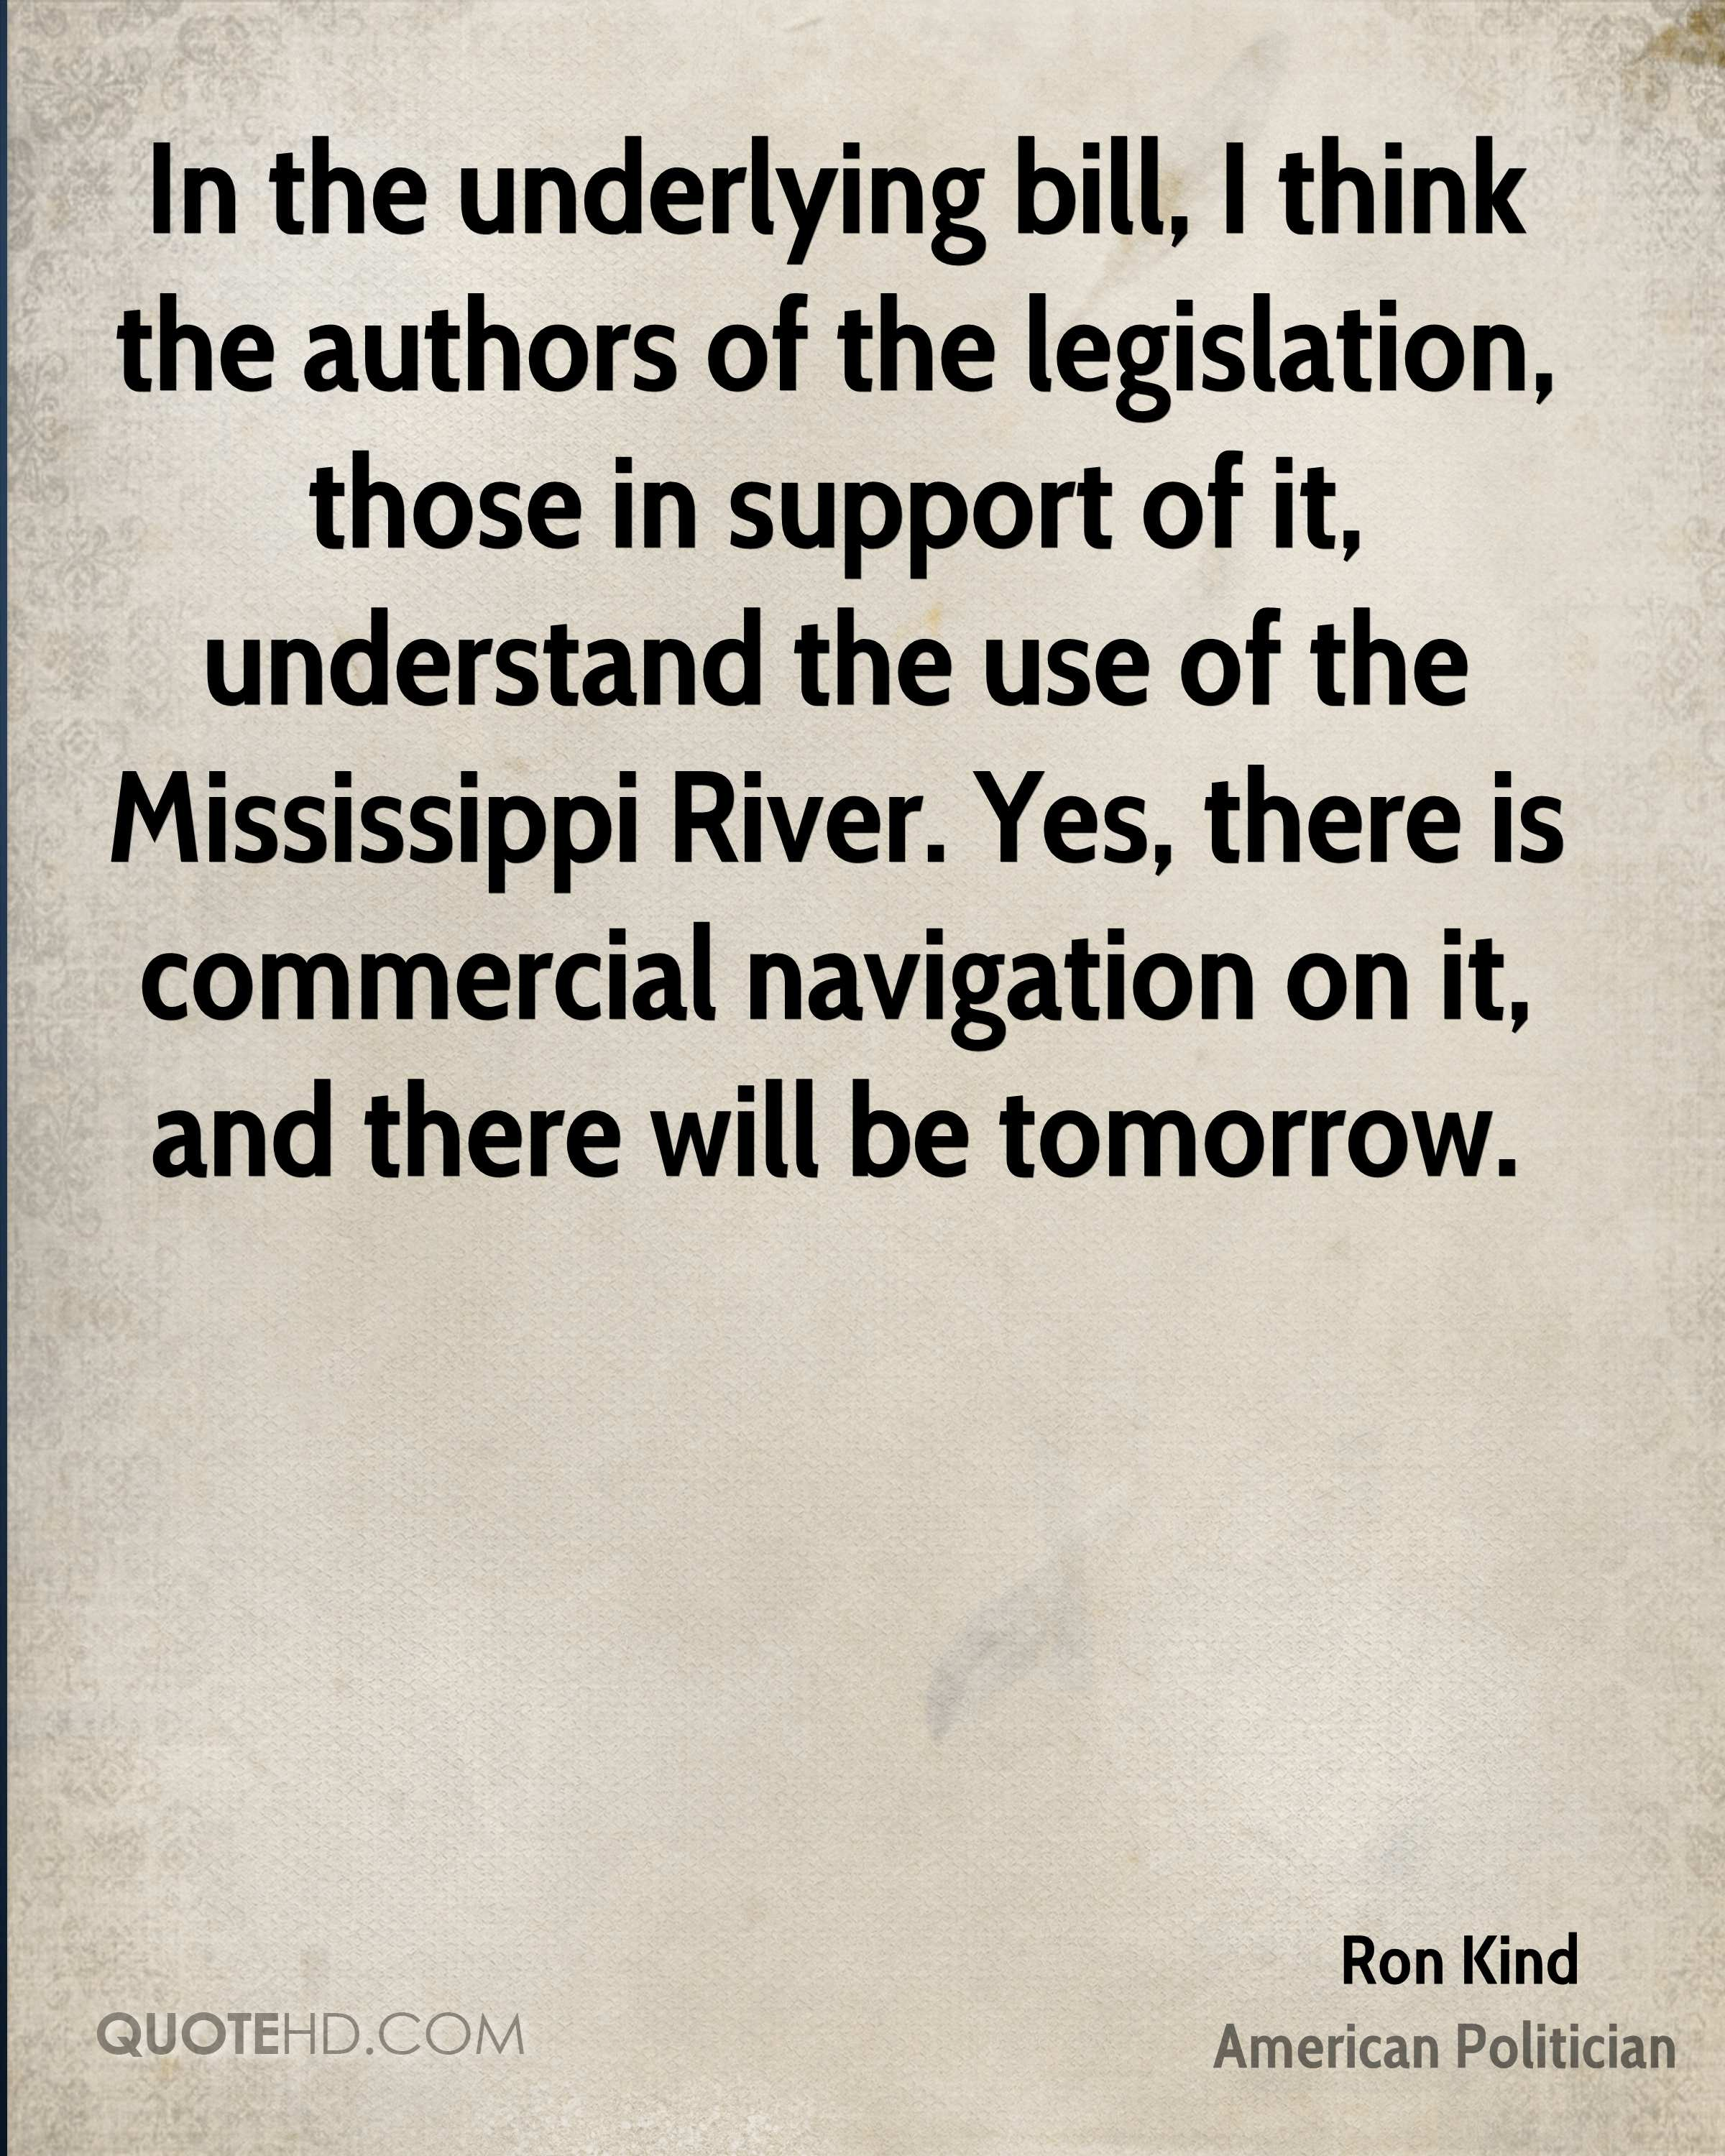 In the underlying bill, I think the authors of the legislation, those in support of it, understand the use of the Mississippi River. Yes, there is commercial navigation on it, and there will be tomorrow.